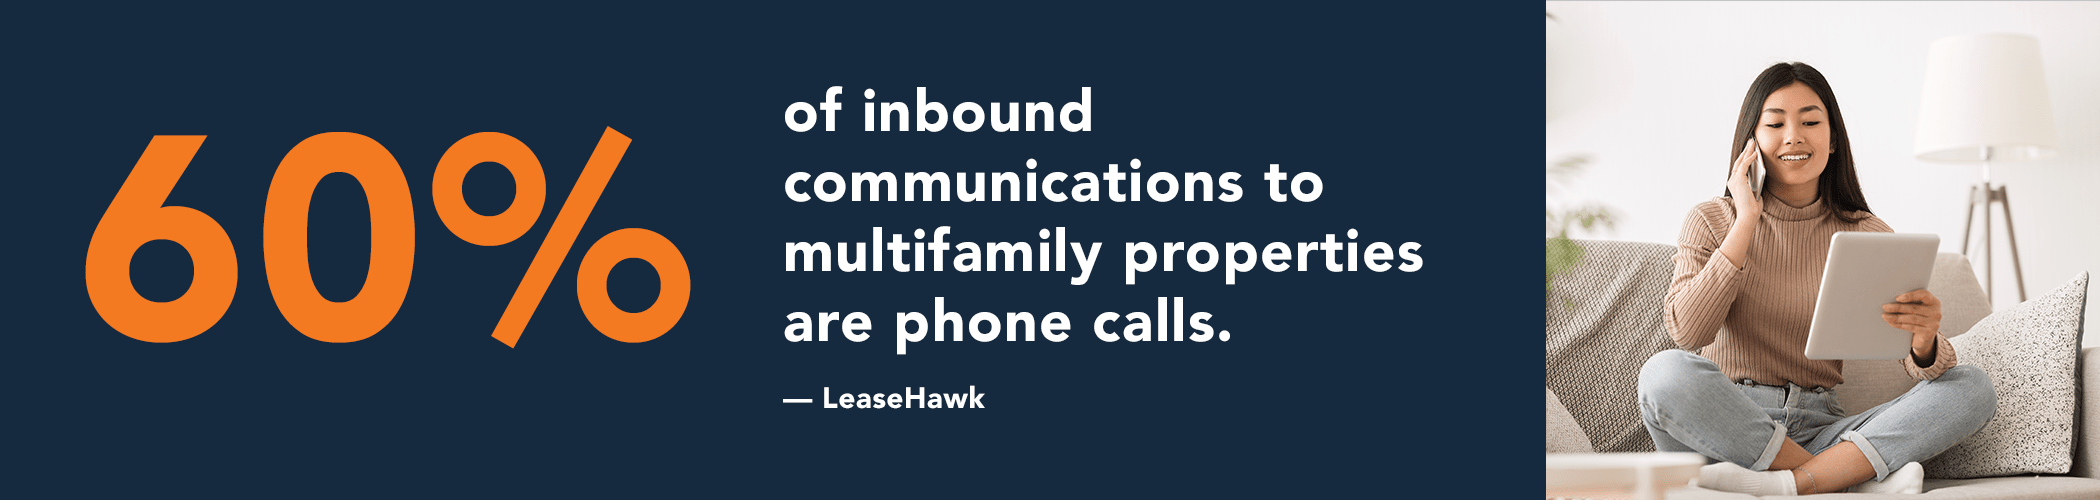 60% of inbound property communications are phone calls.